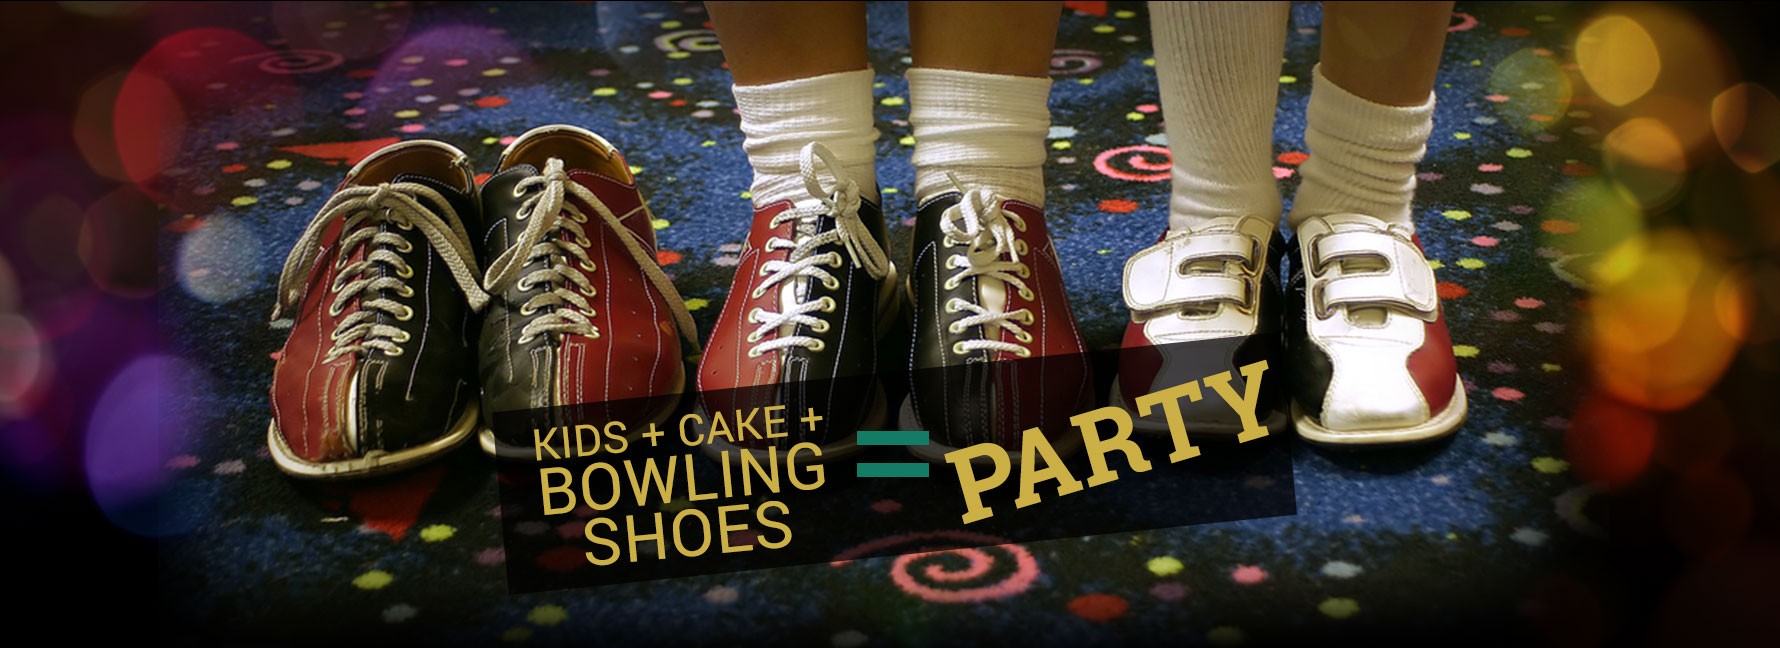 Kids + Cake + Bowling Shoes = Party